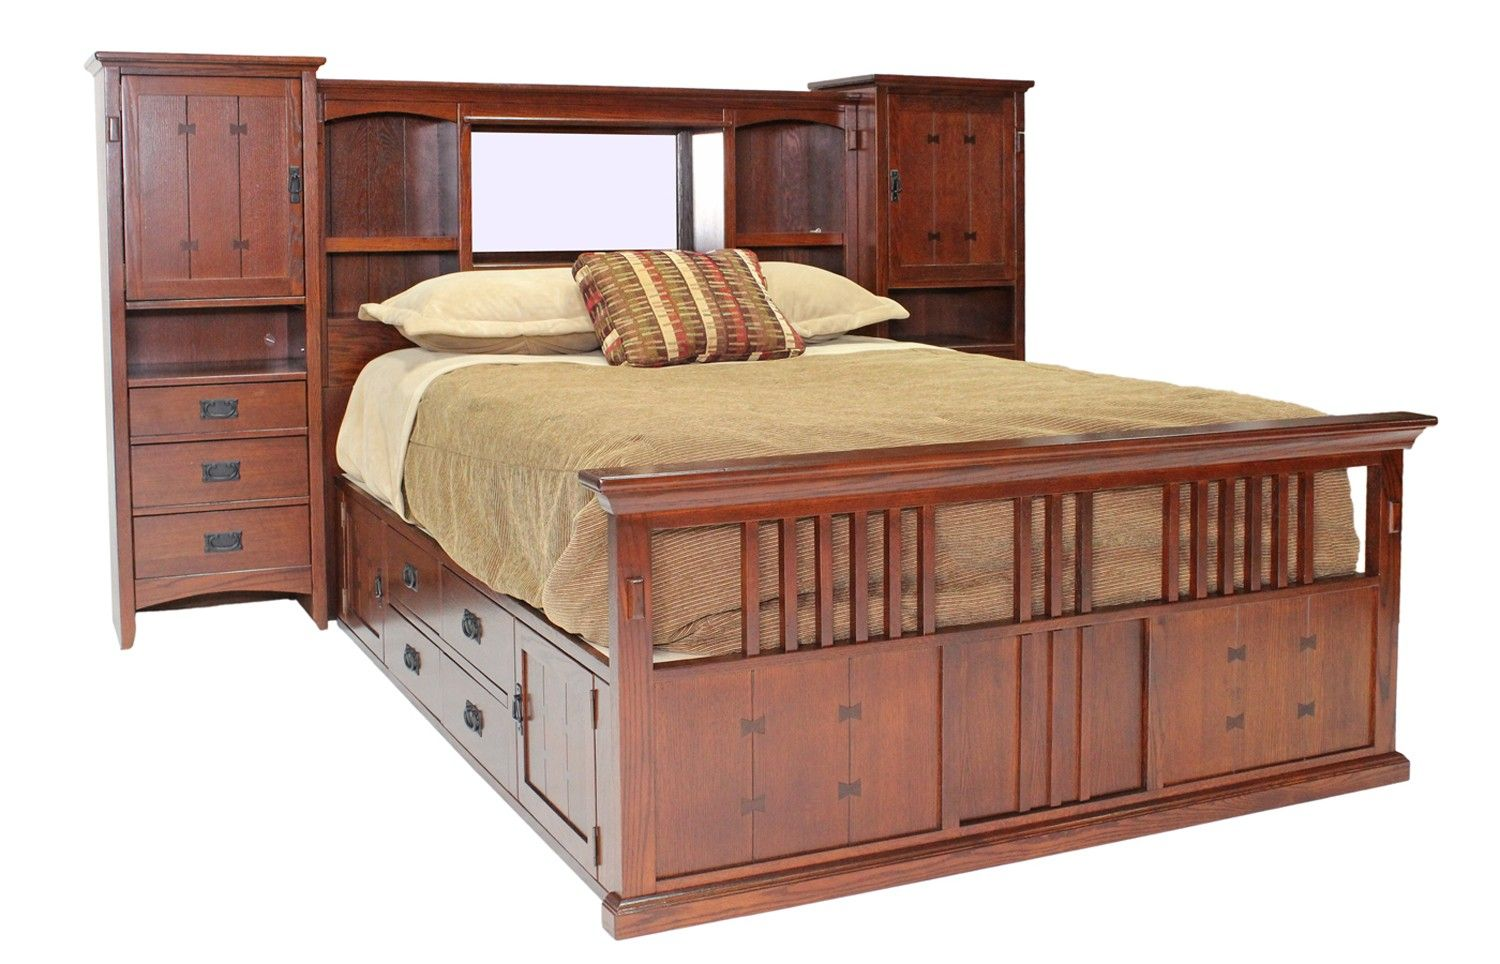 San mateo oak mid wall queen bed with pedestal beds for Queen bed frame and dresser set